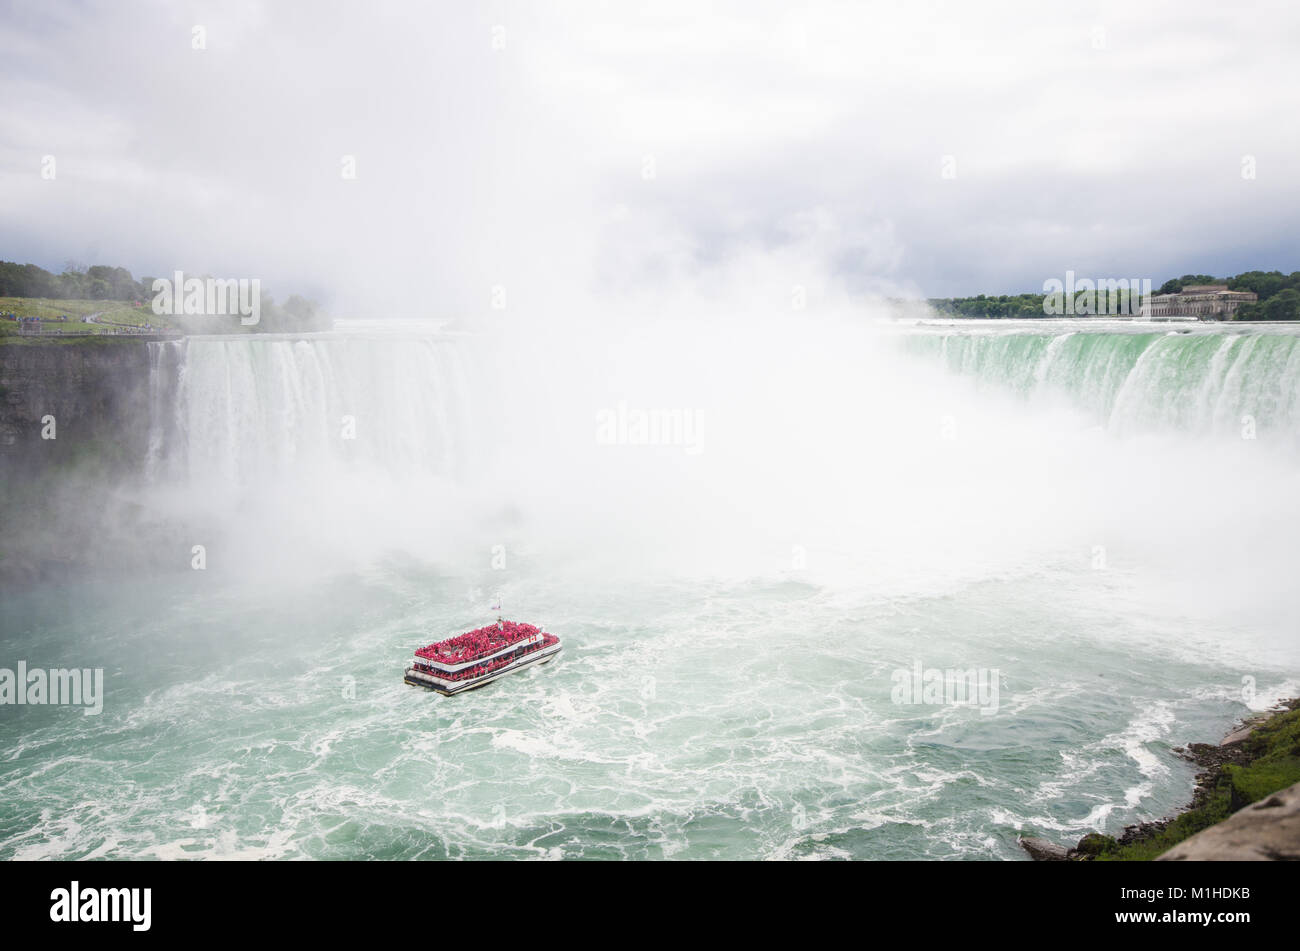 A boat full of tourists wearing red ponchos move into niagara falls through the mist - Stock Image